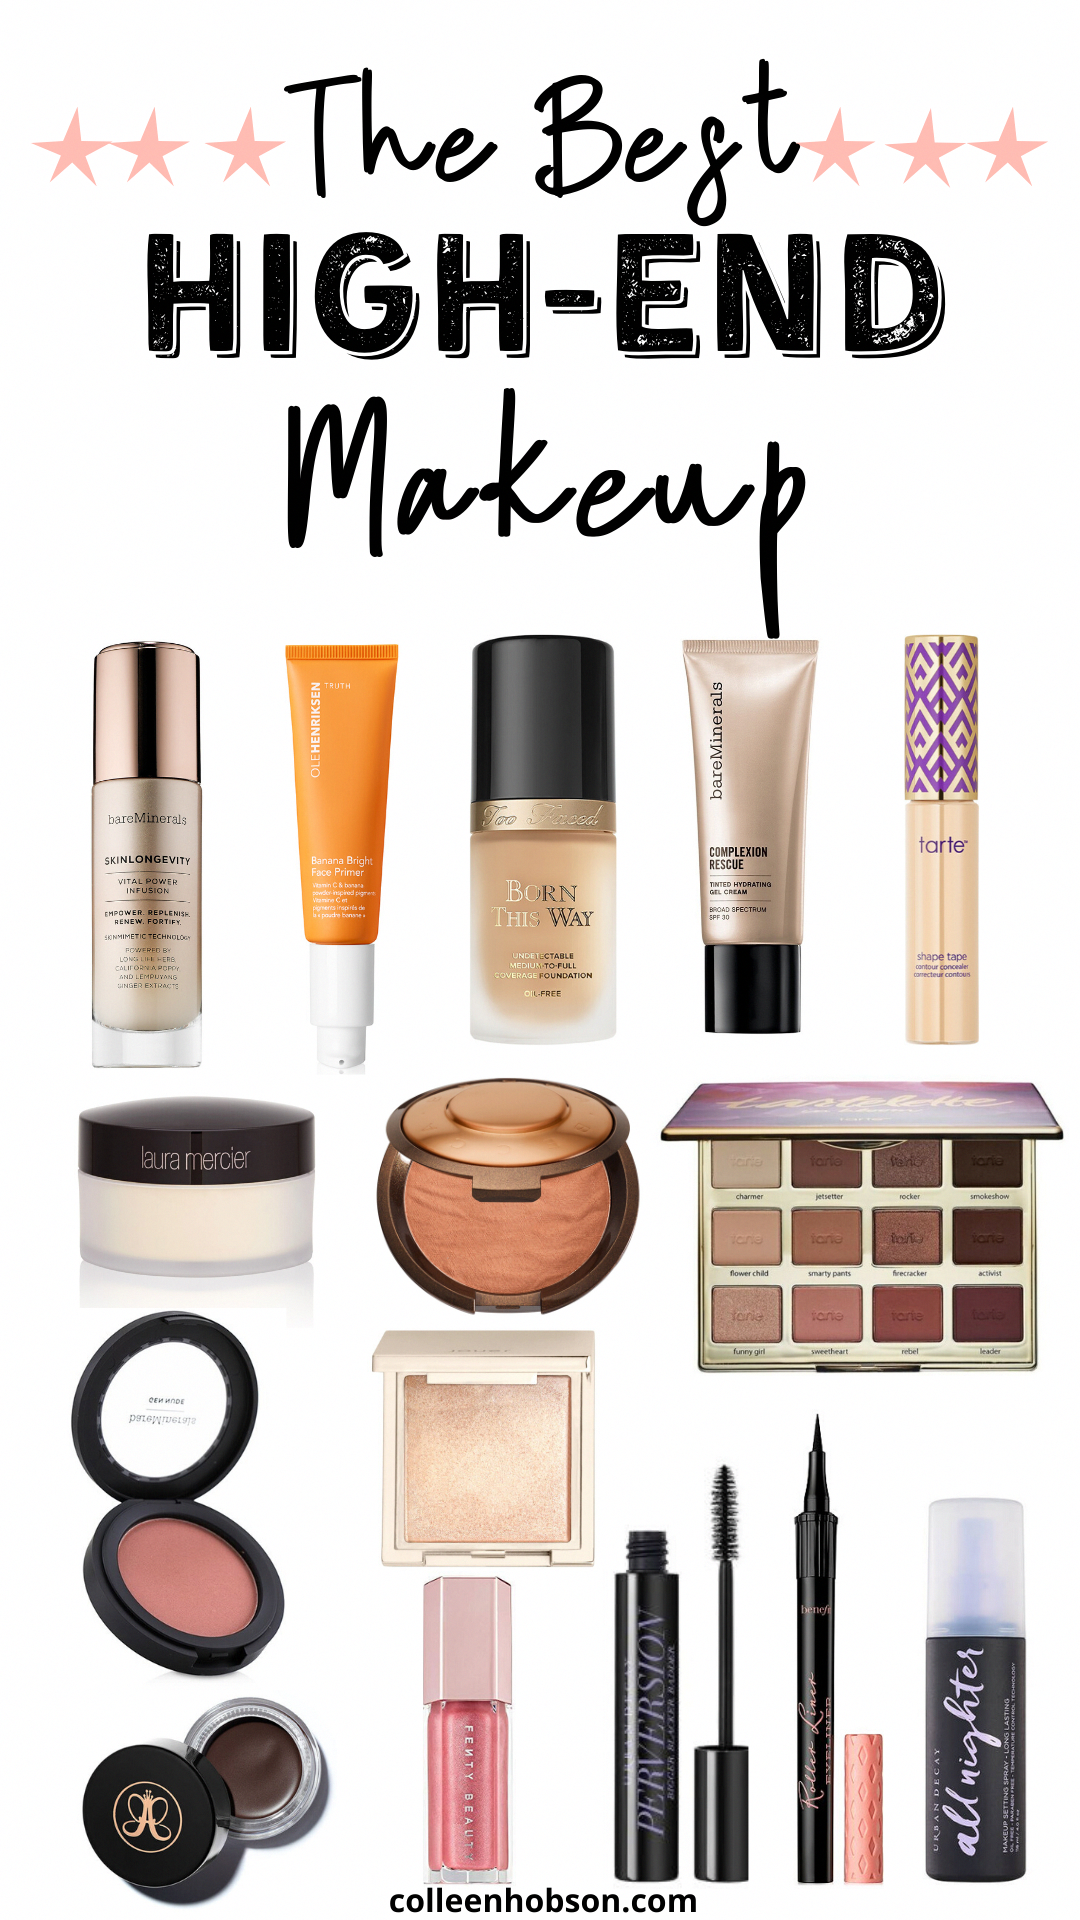 The Best High End Makeup Holy Grail Products